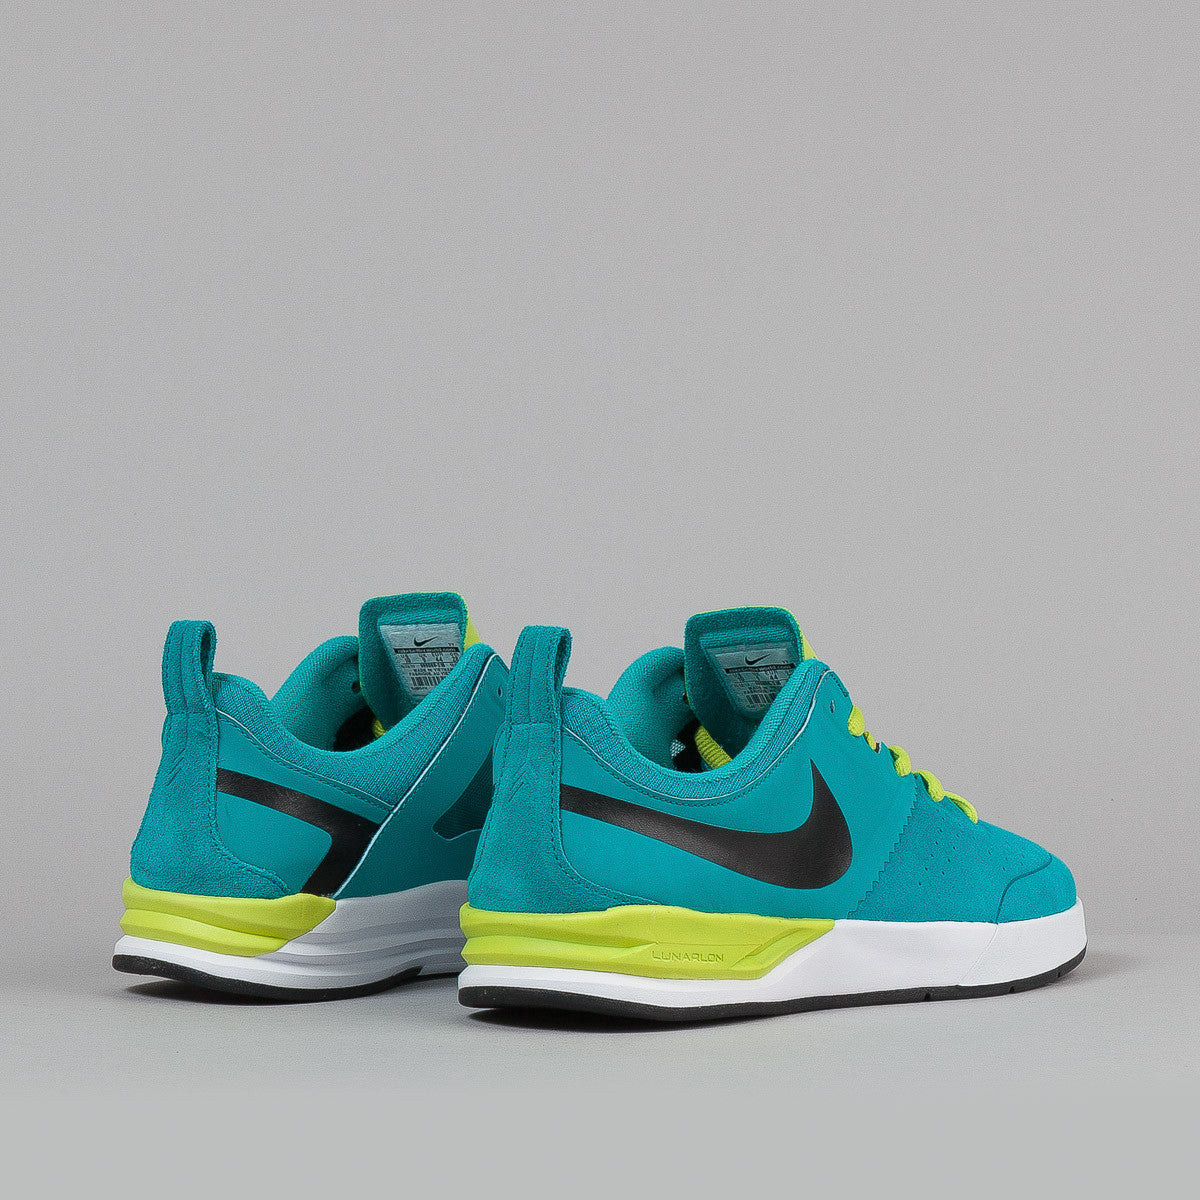 Nike SB Project BA Turbo Green / White - White